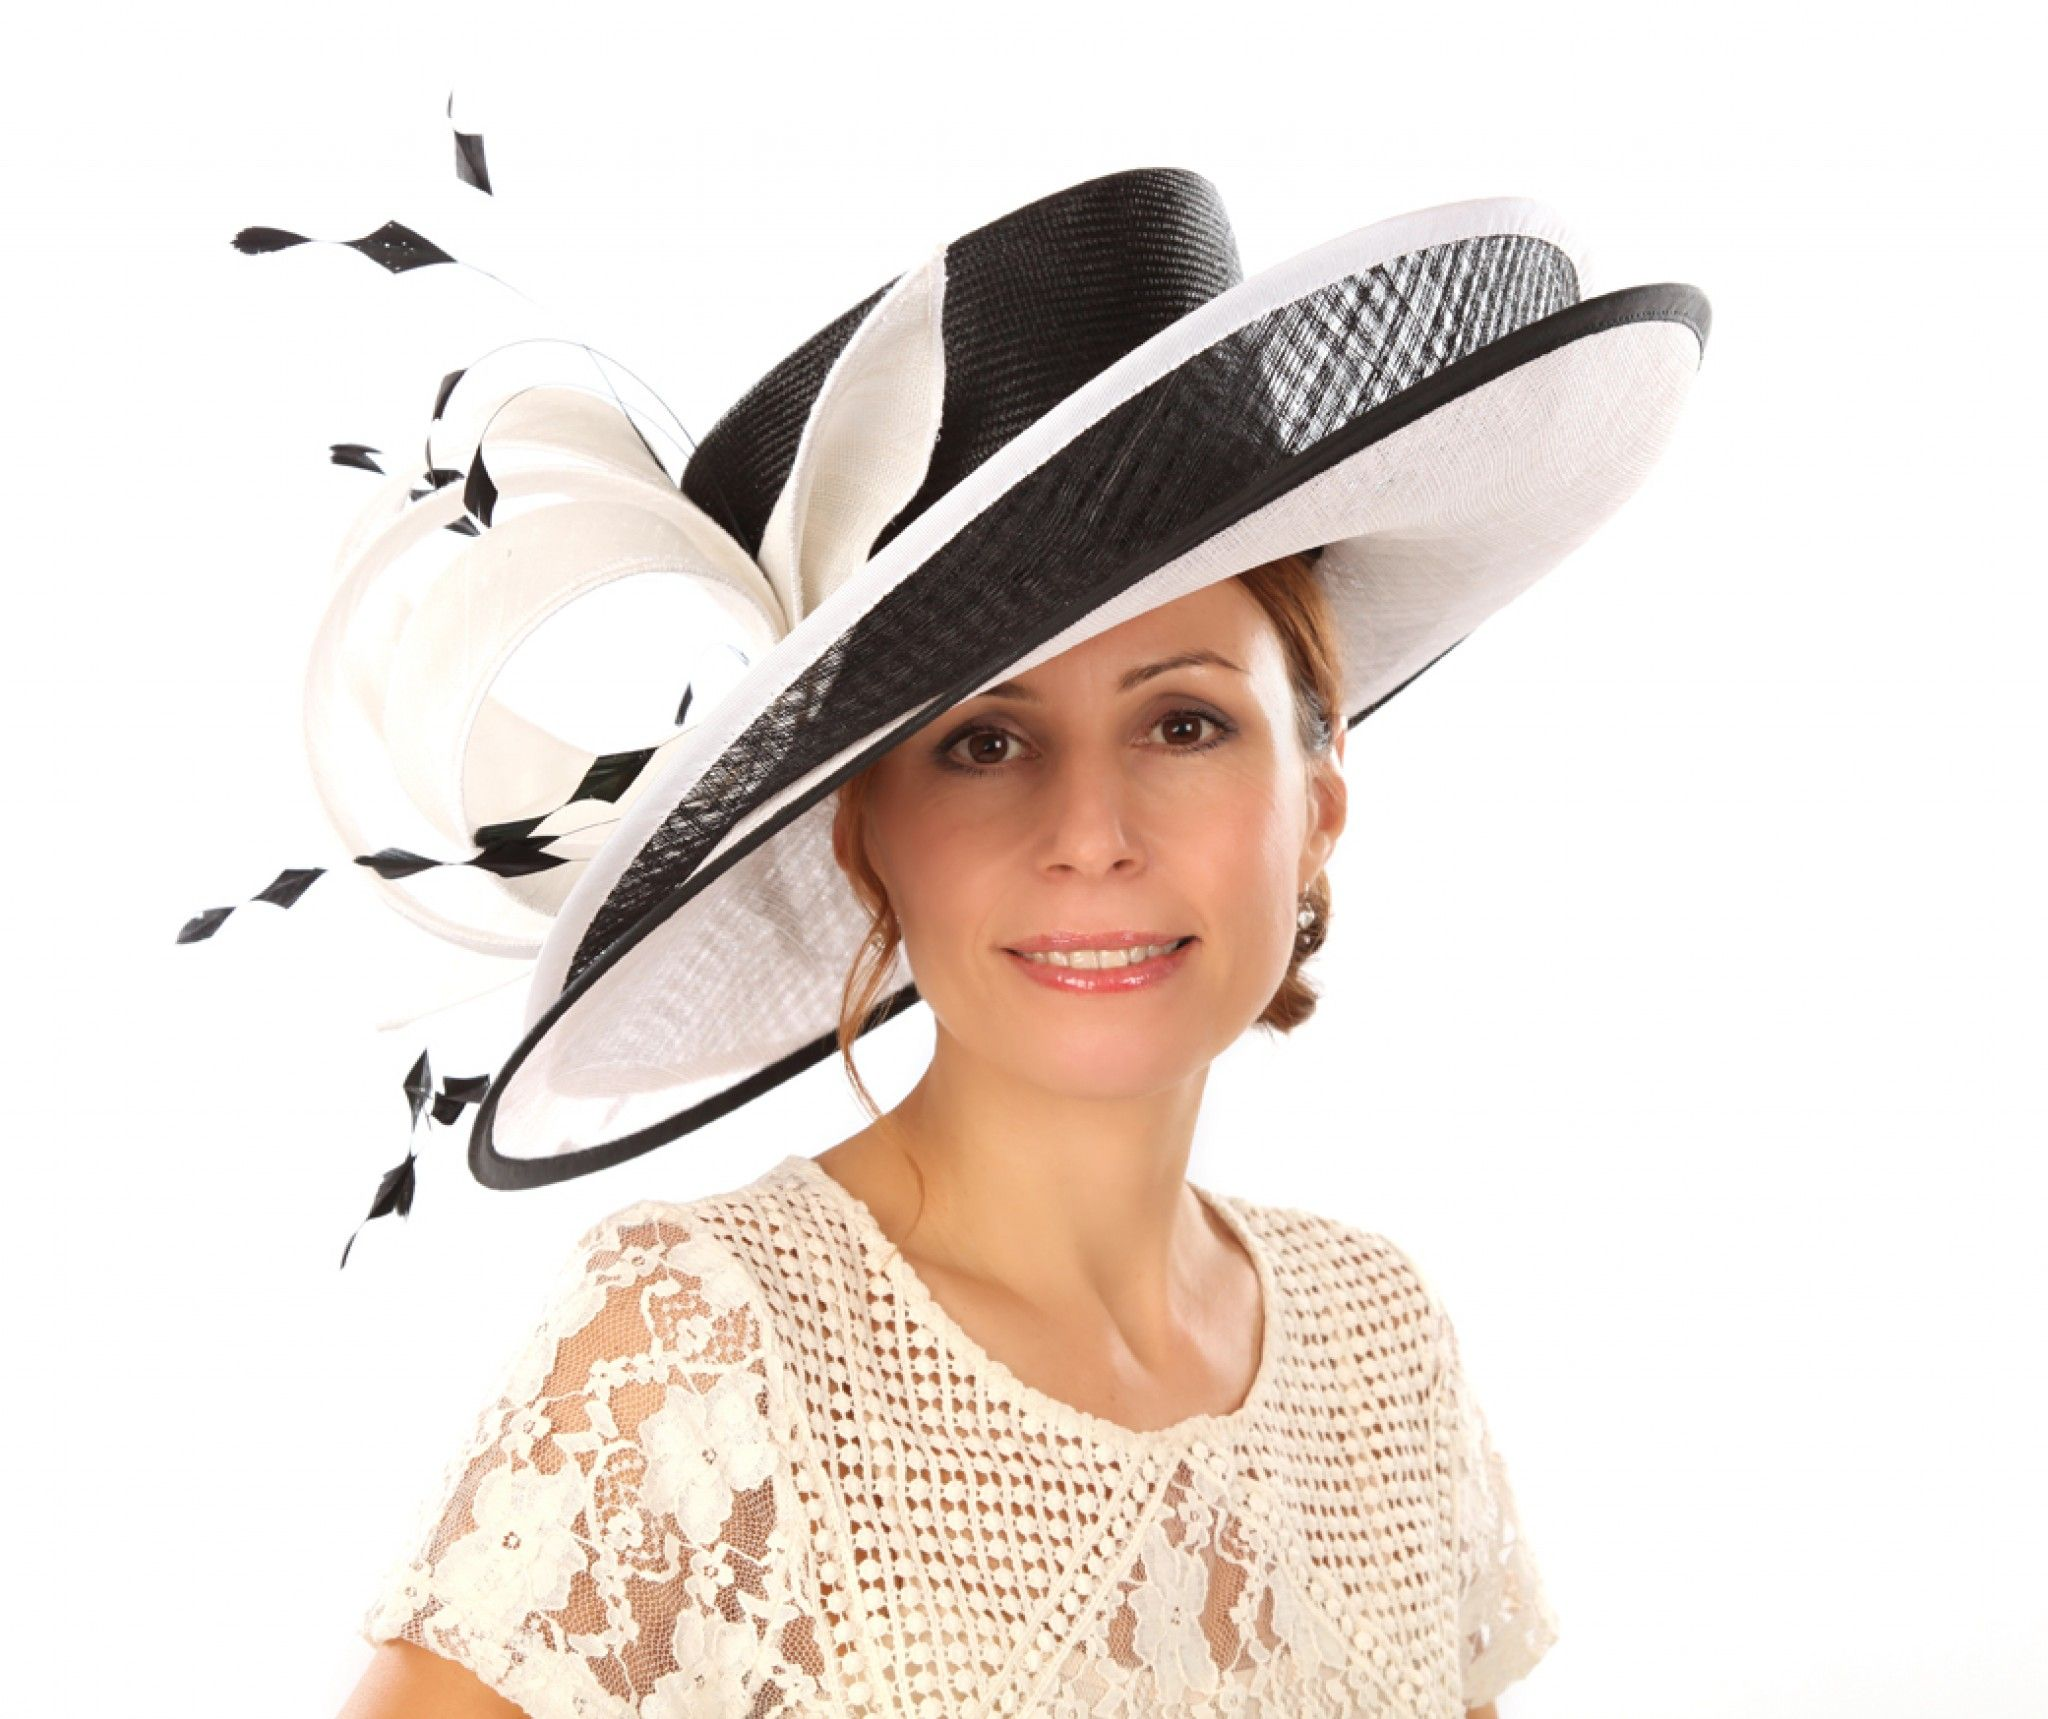 Matching Shoes And Bags Hats Fascinators For Special Occasions Weddings Events Of All Sorts